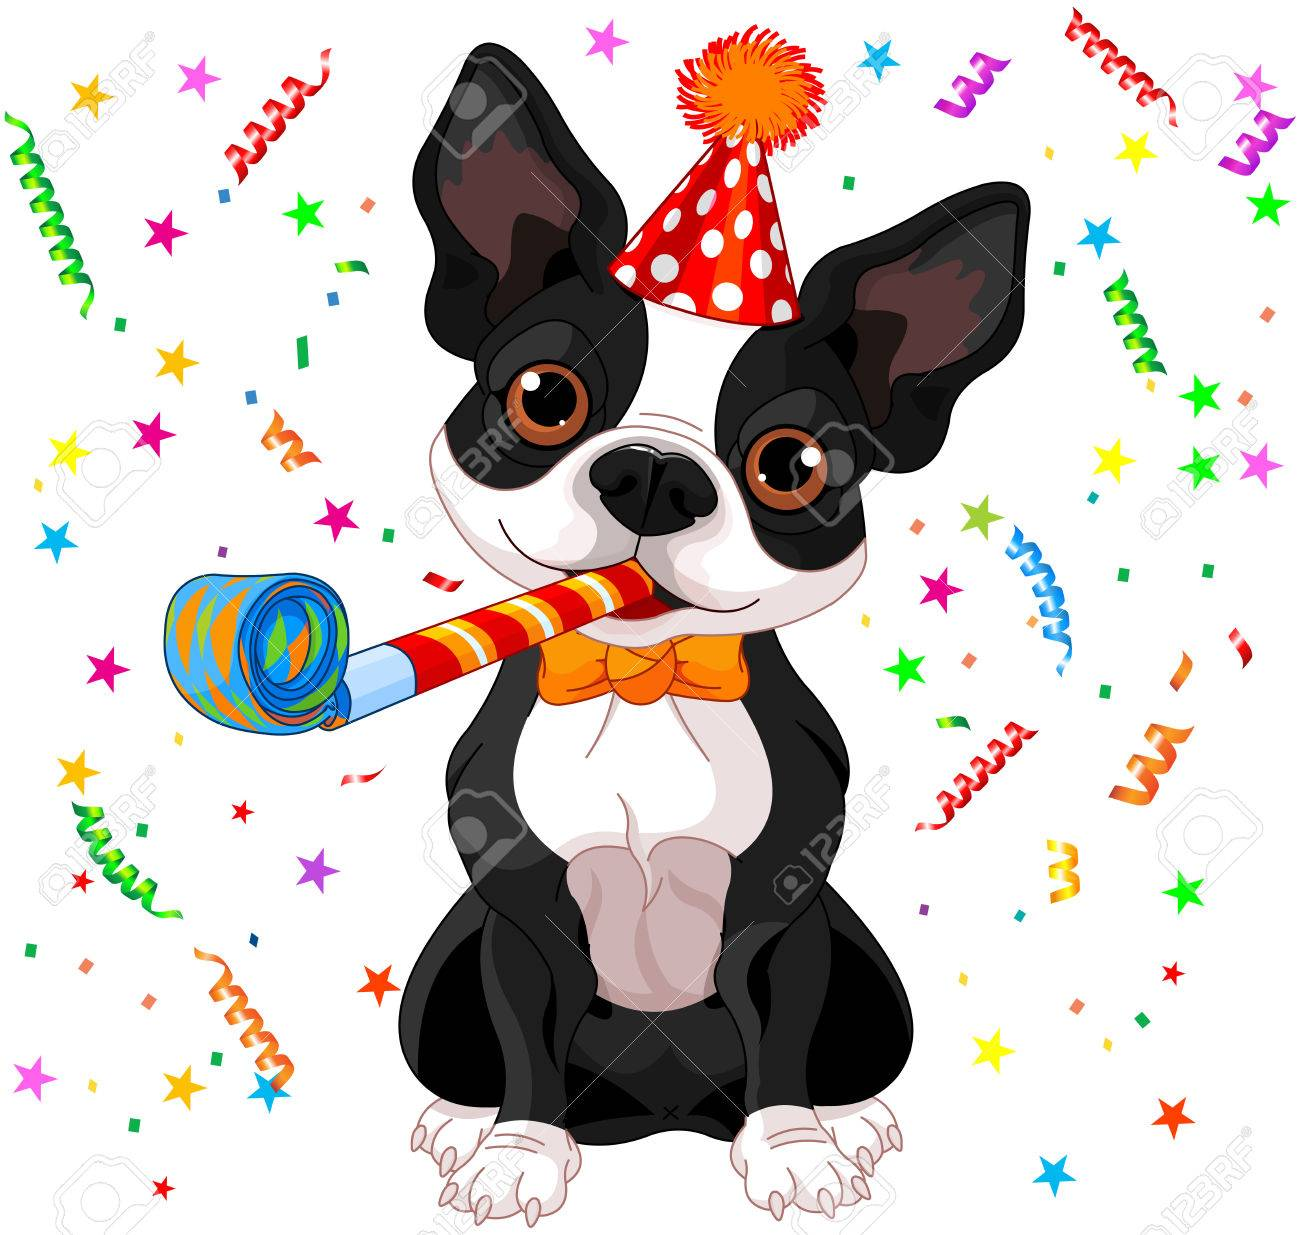 Pourquoi avoir choisi le métier d'éducateur canin/comportementaliste? 35588778-illustration-of-cute-boston-terrier-celebrating